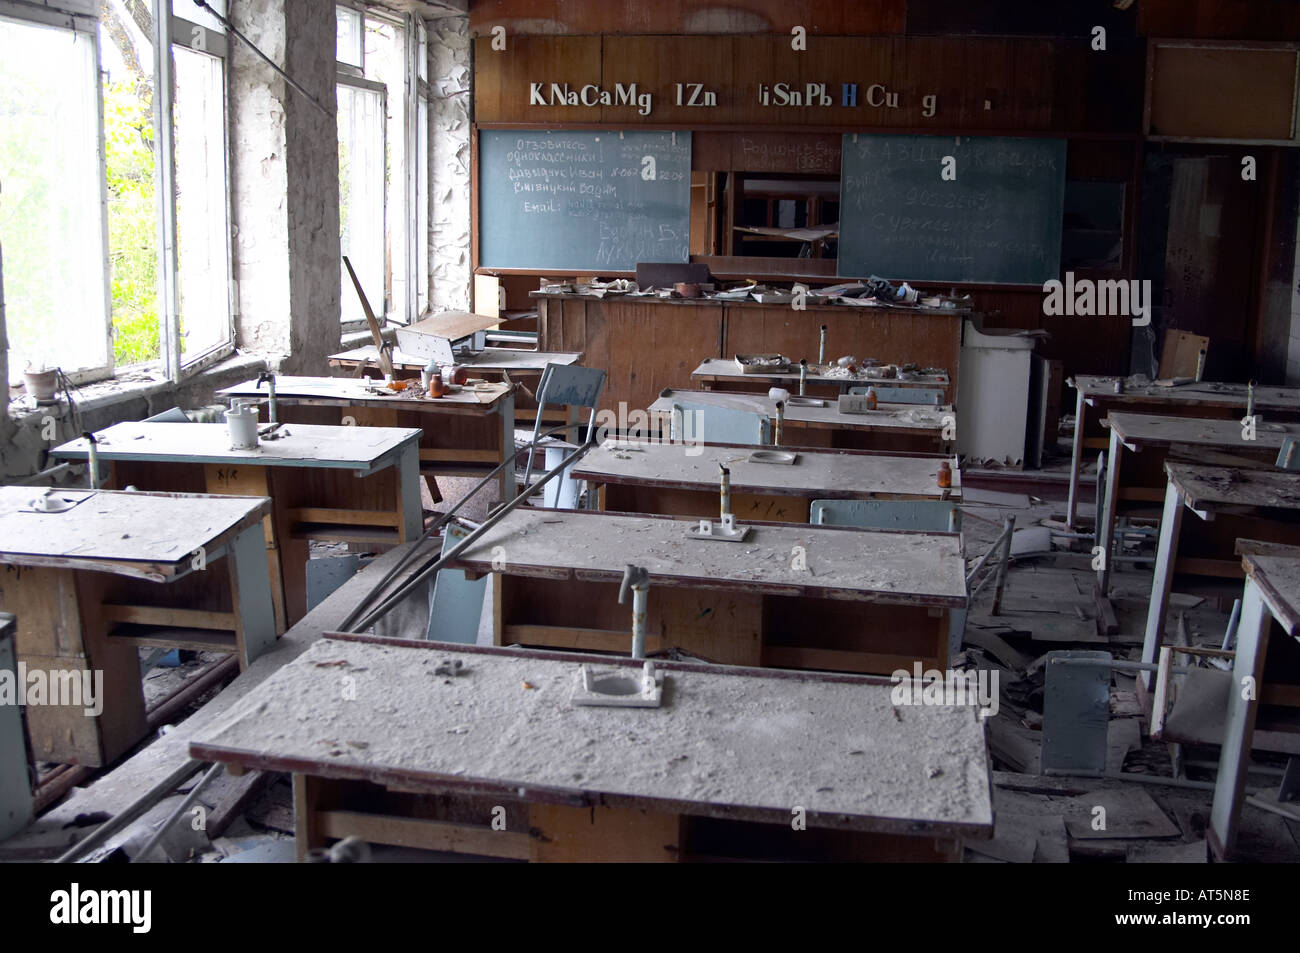 Classroom in a school in Prypiat (Chernobyl), Ukraine. 19 years after disaster. - Stock Image